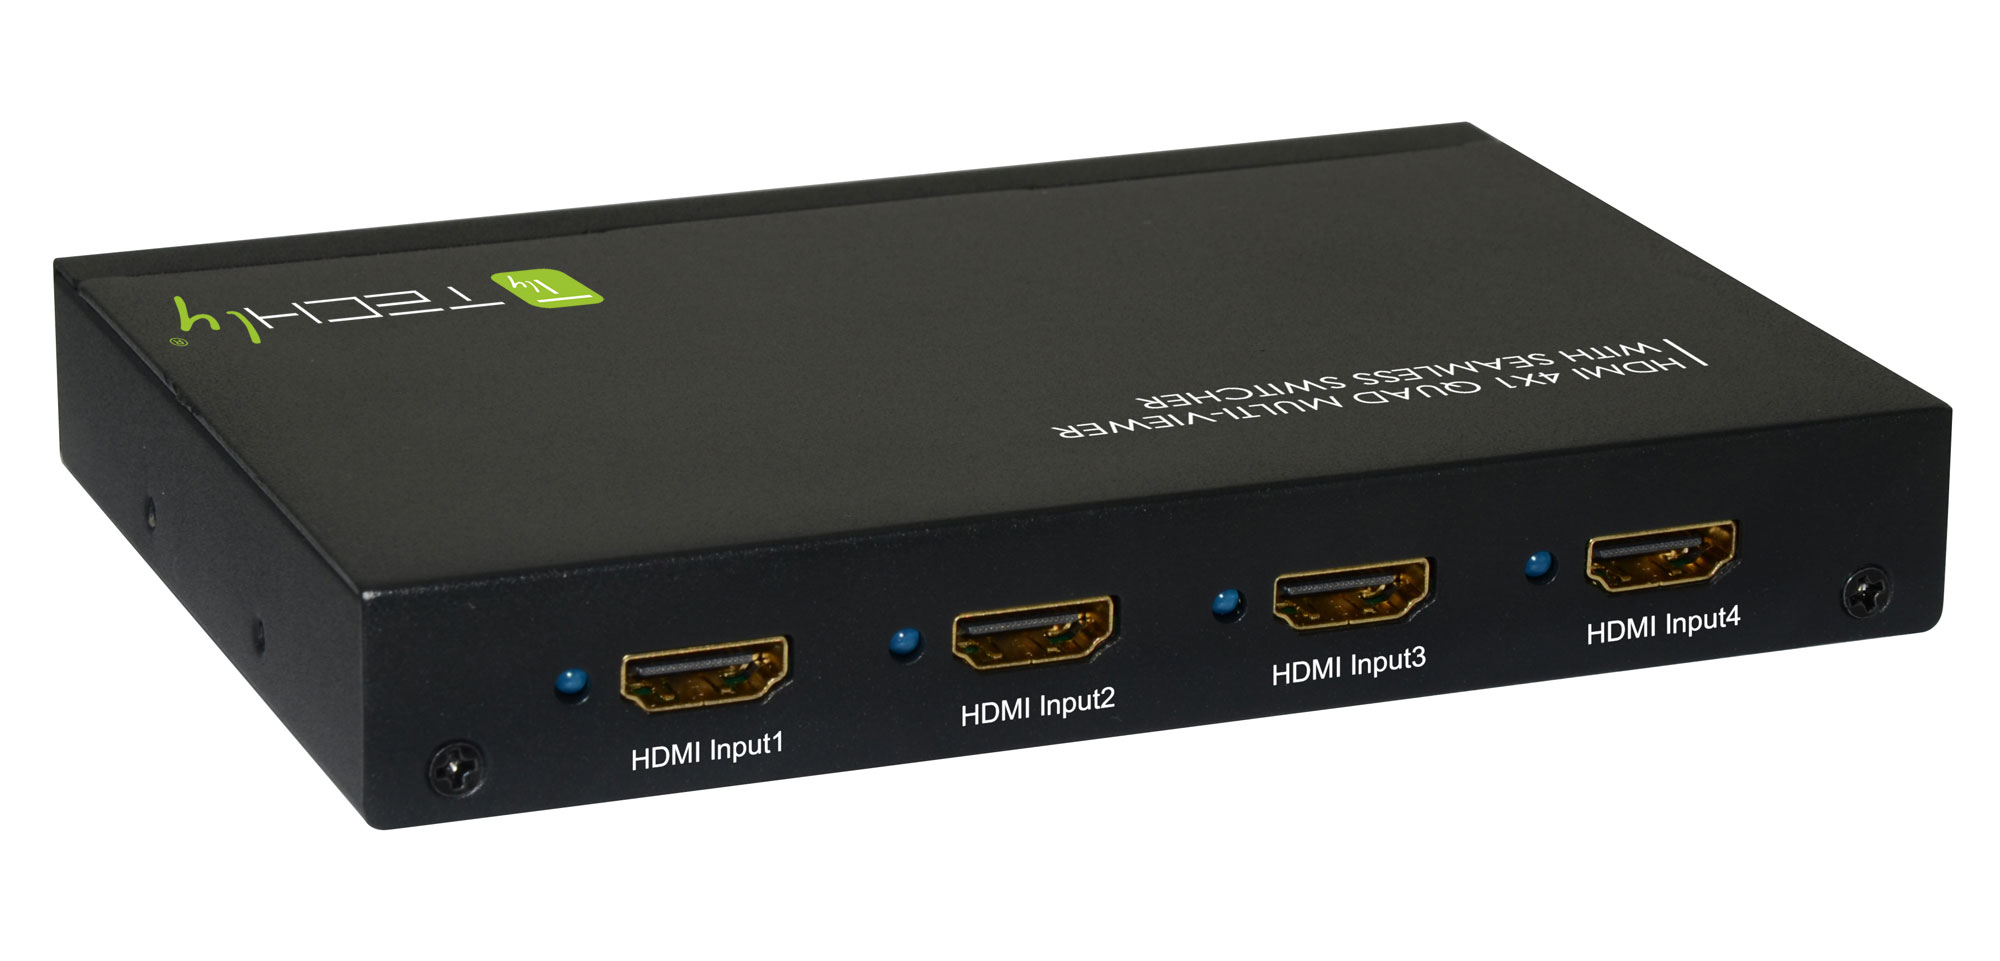 HDMI 4x1 Multi-viewer with seamless switcher - Audio Video